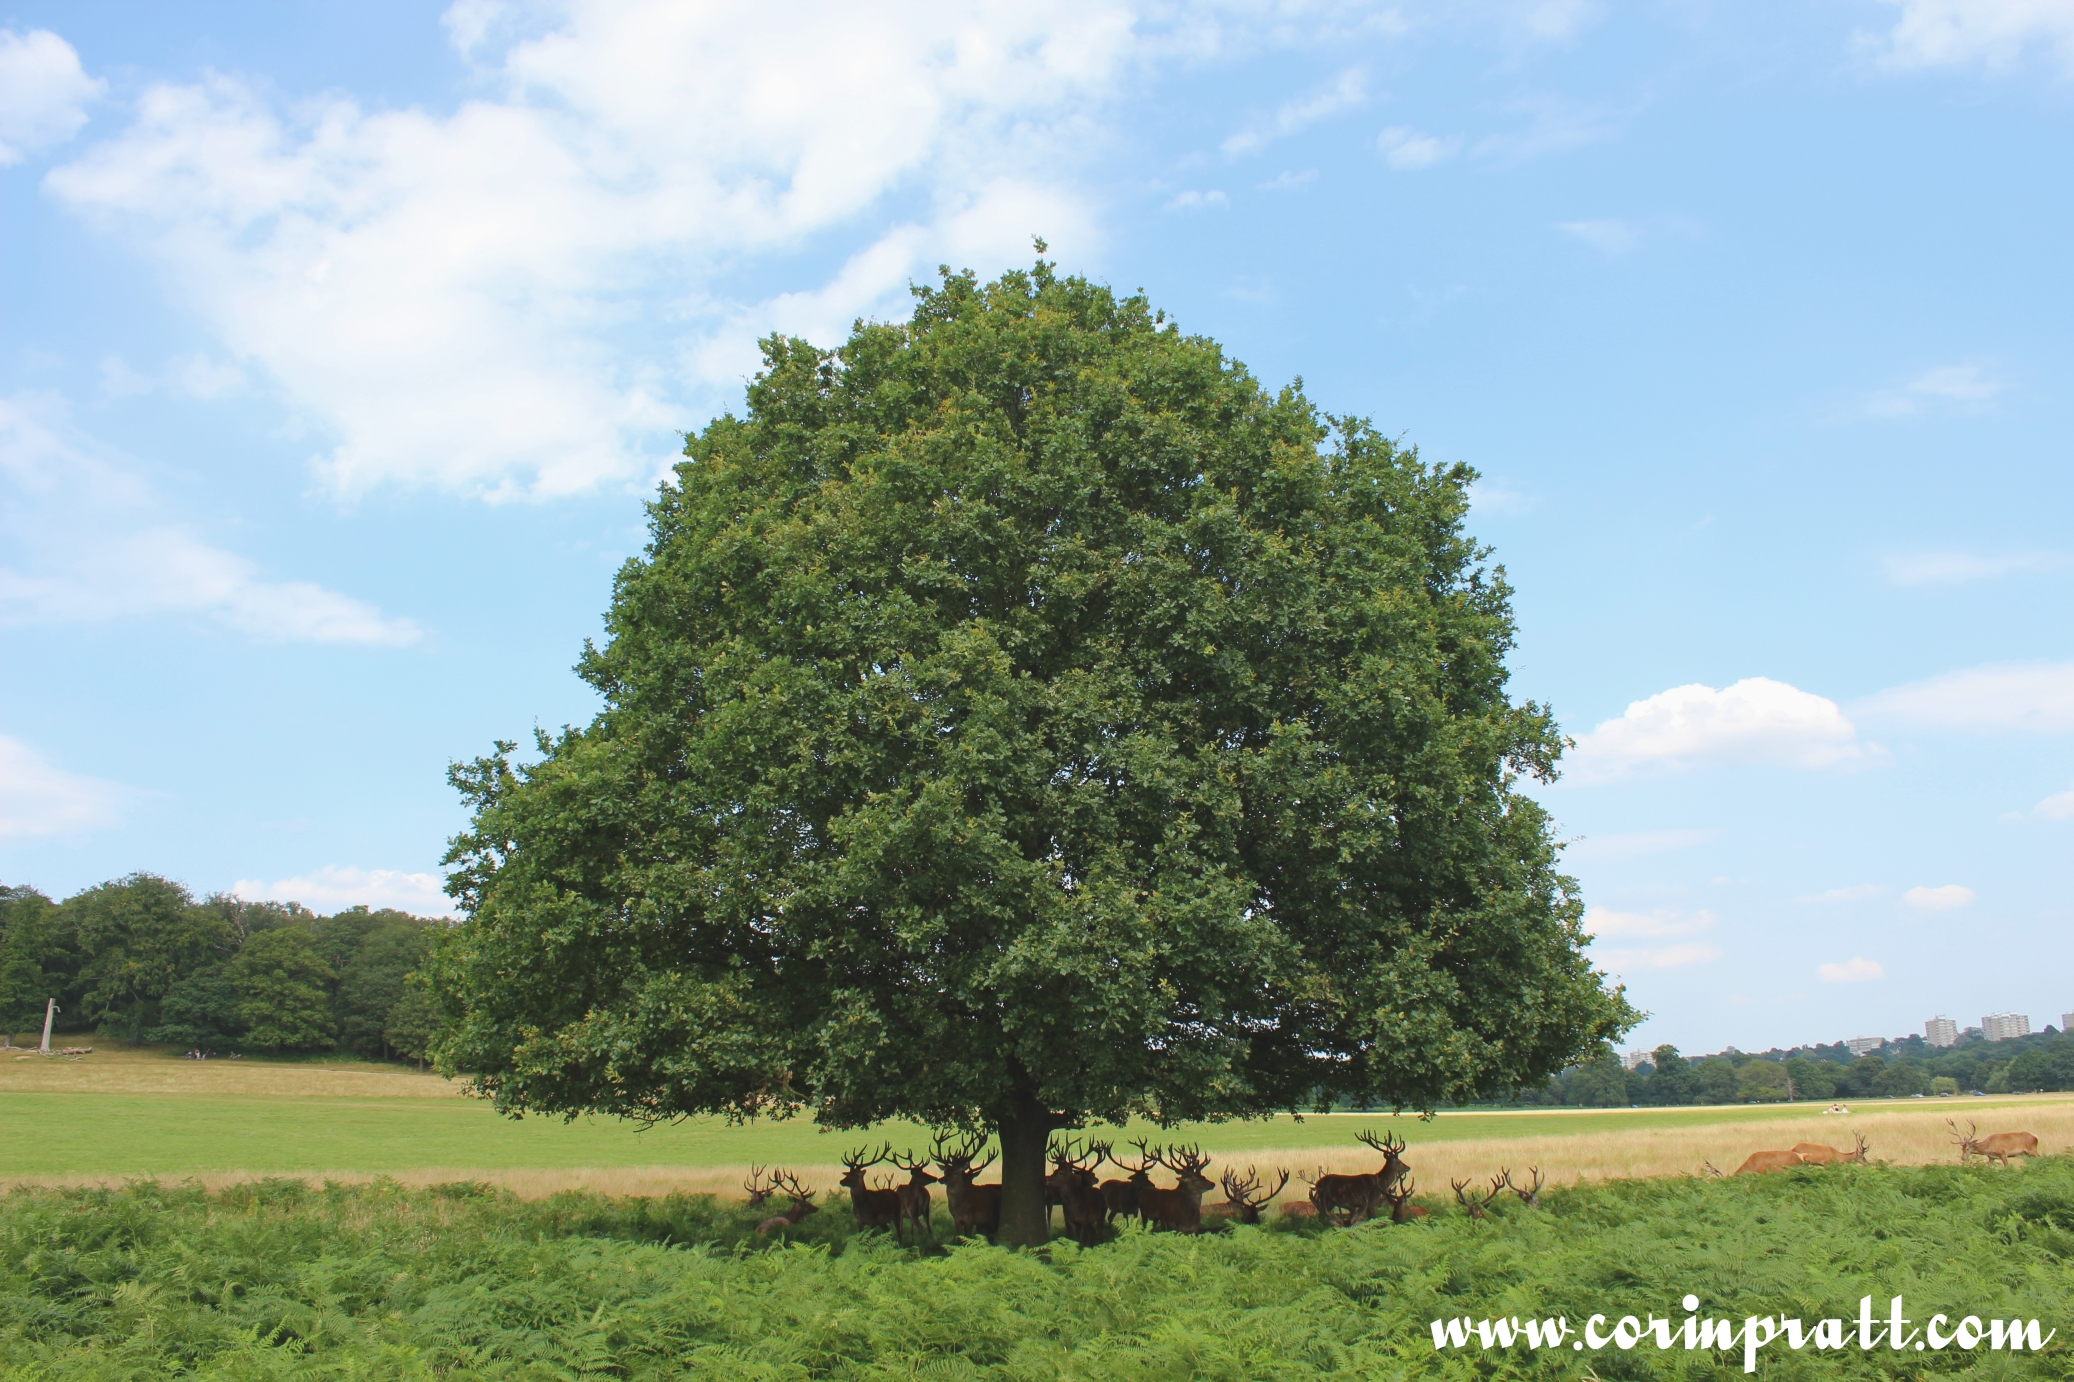 Red deer tree shade, Richmond Park